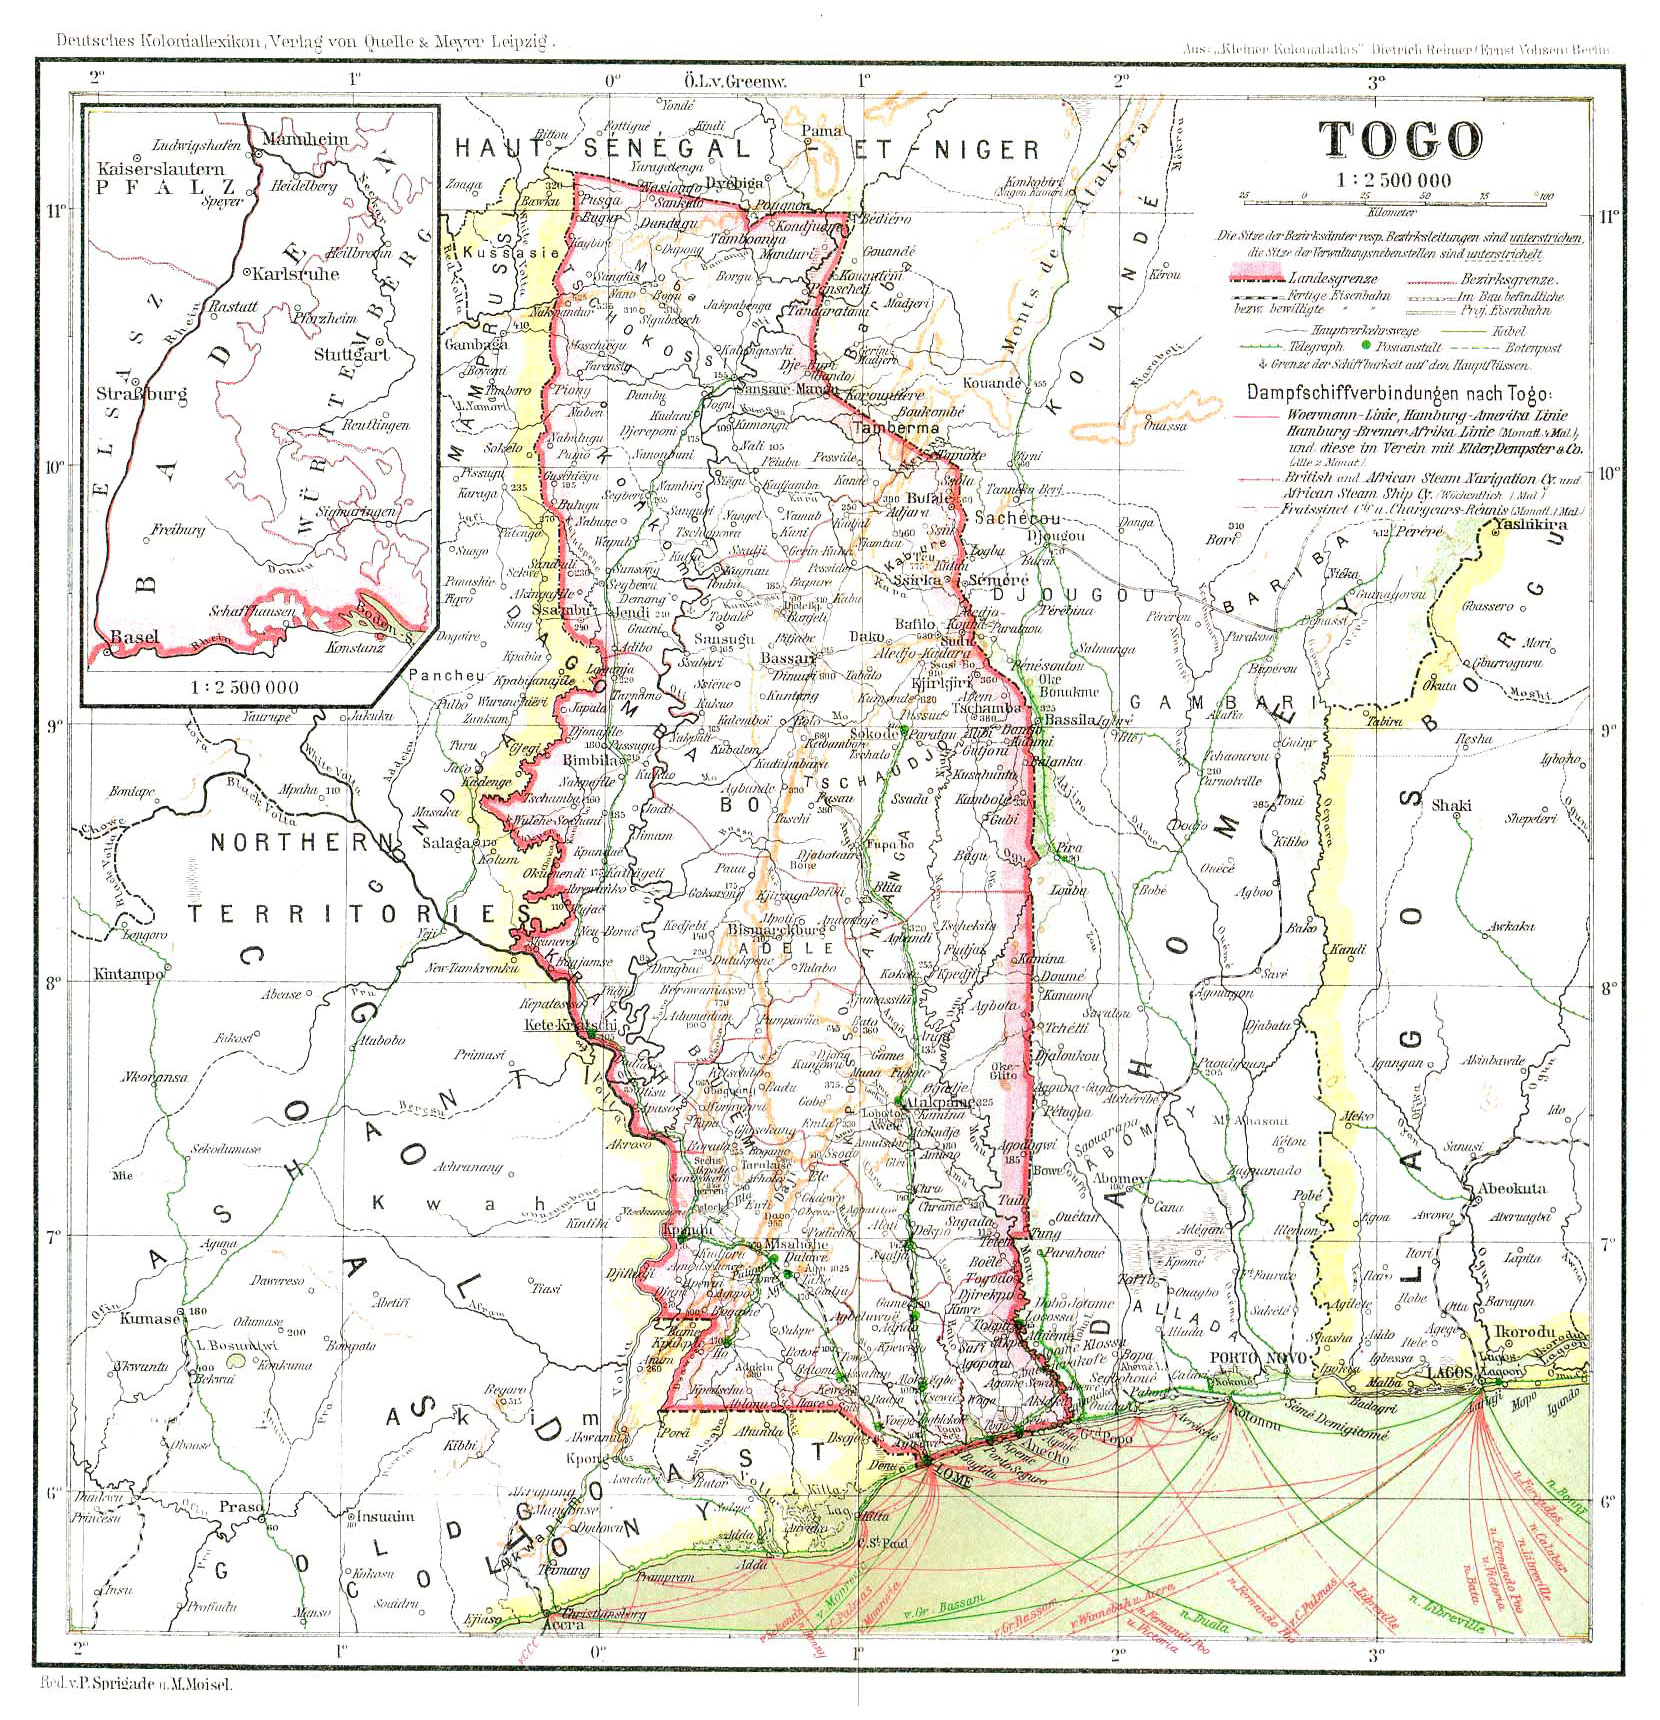 Large Detailed Old Map Of Togo Togo Africa Mapsland Maps - Togo map